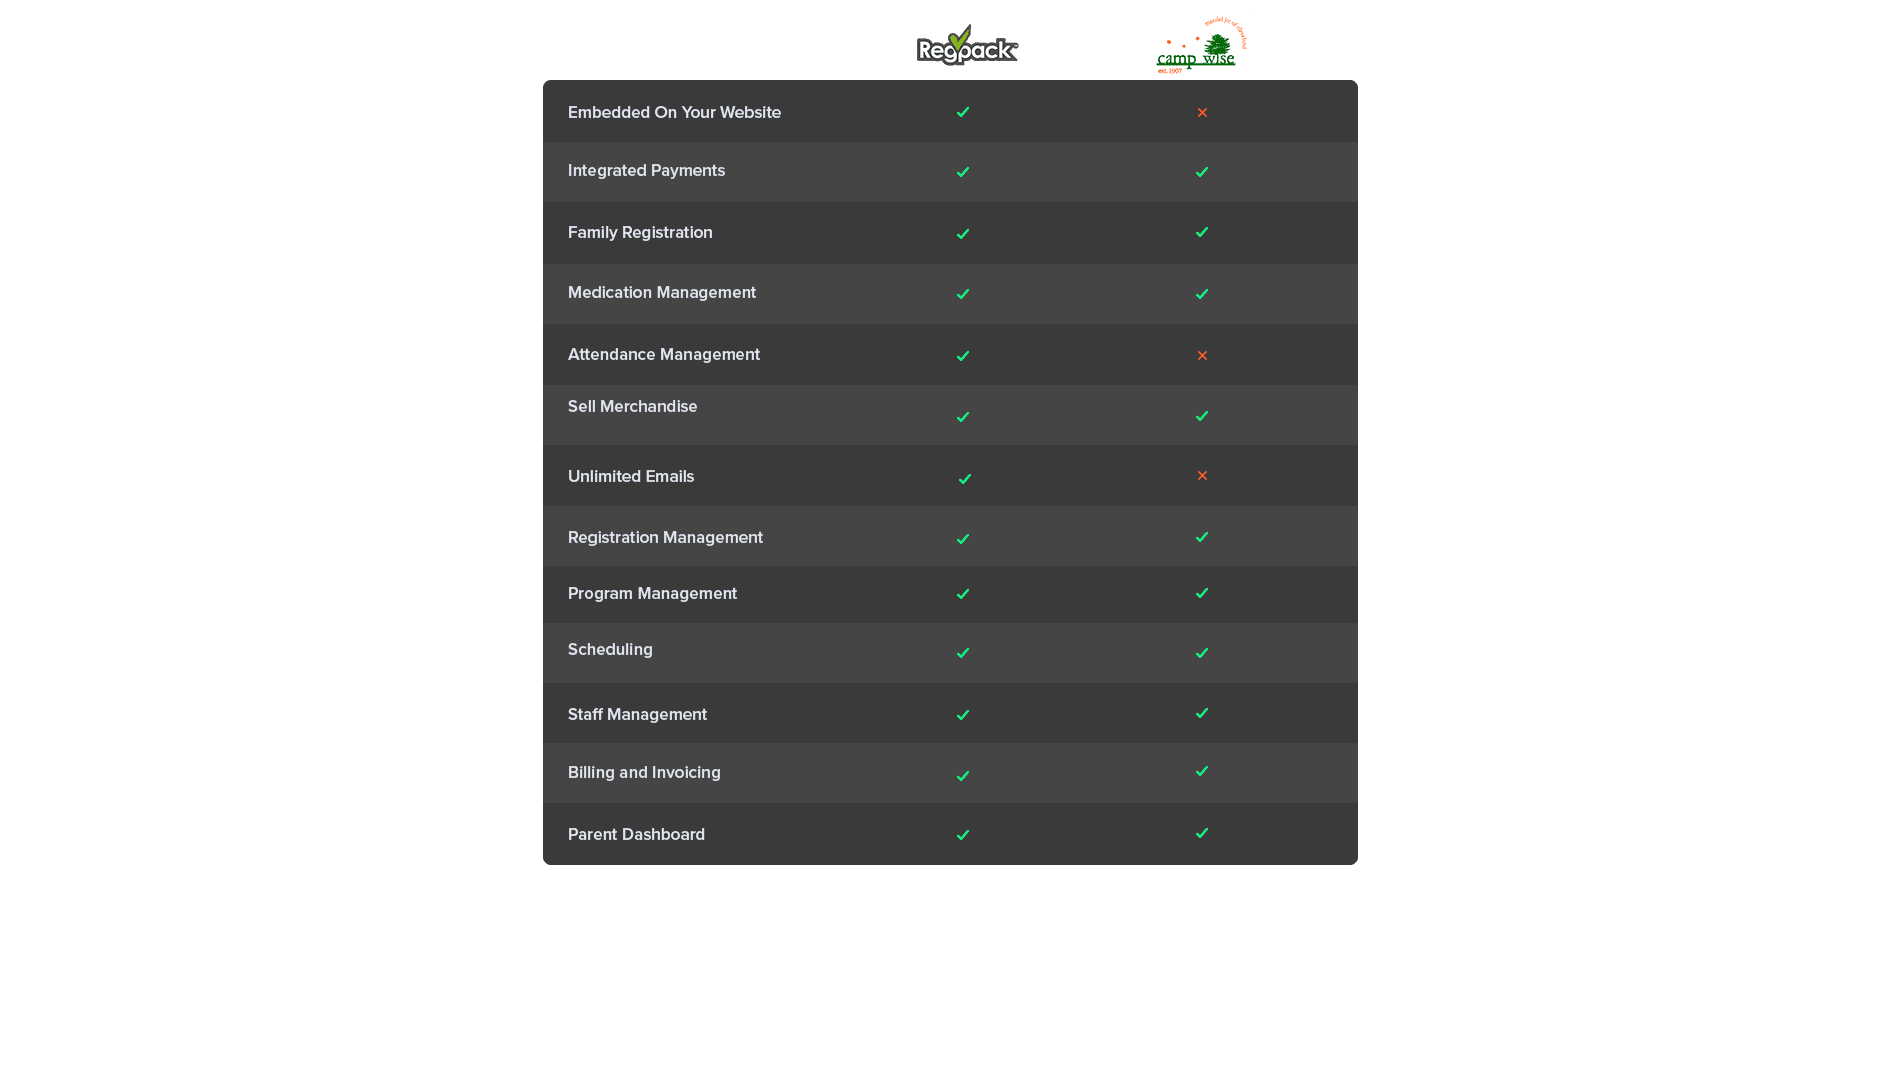 regpack campwise camp software comparison